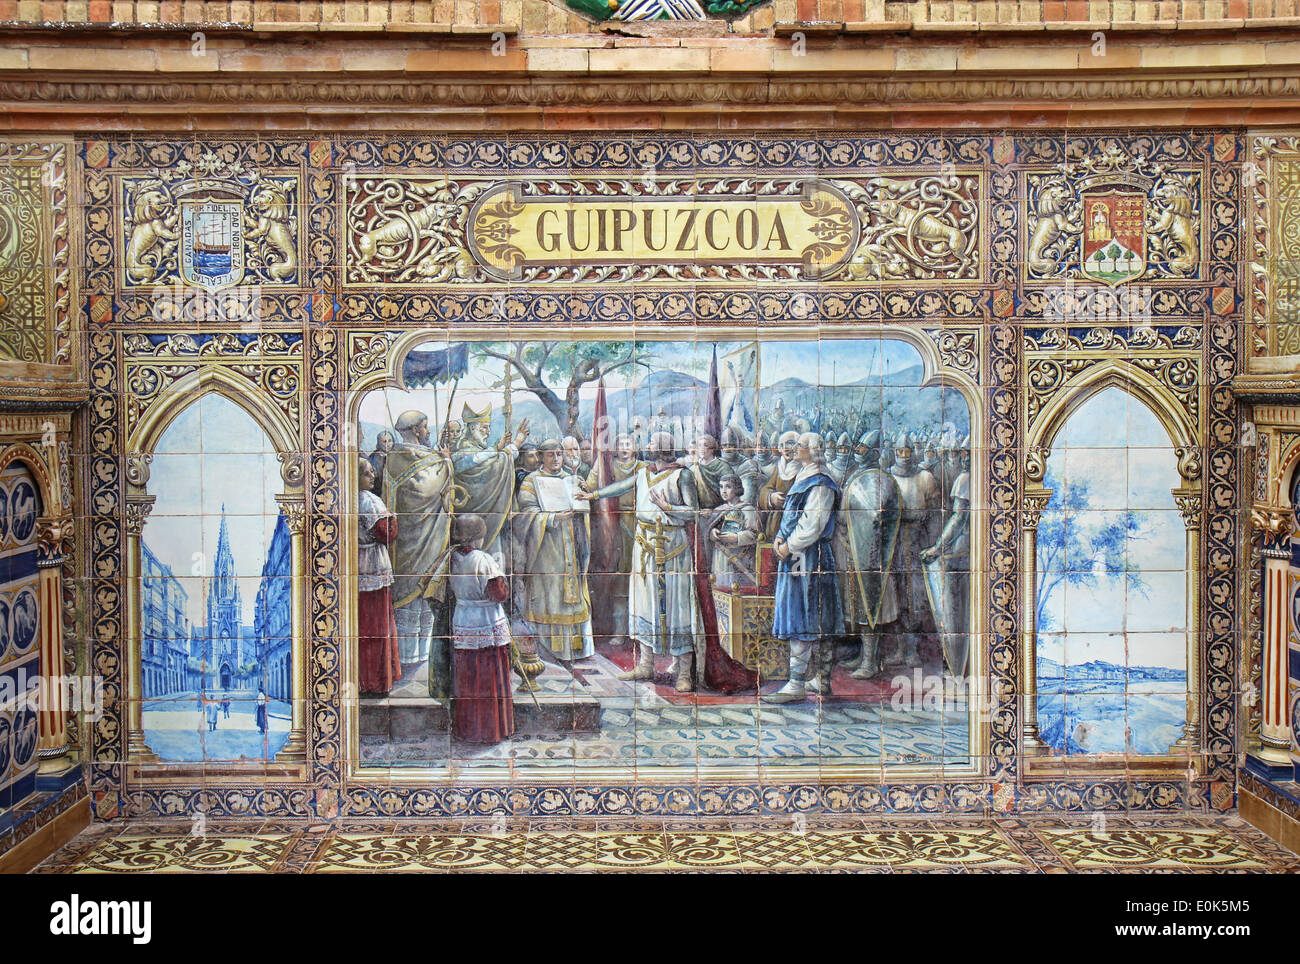 Ceramic tile mural at plaza de espana in seville spain stock ceramic tile mural at plaza de espana in seville spain doublecrazyfo Images